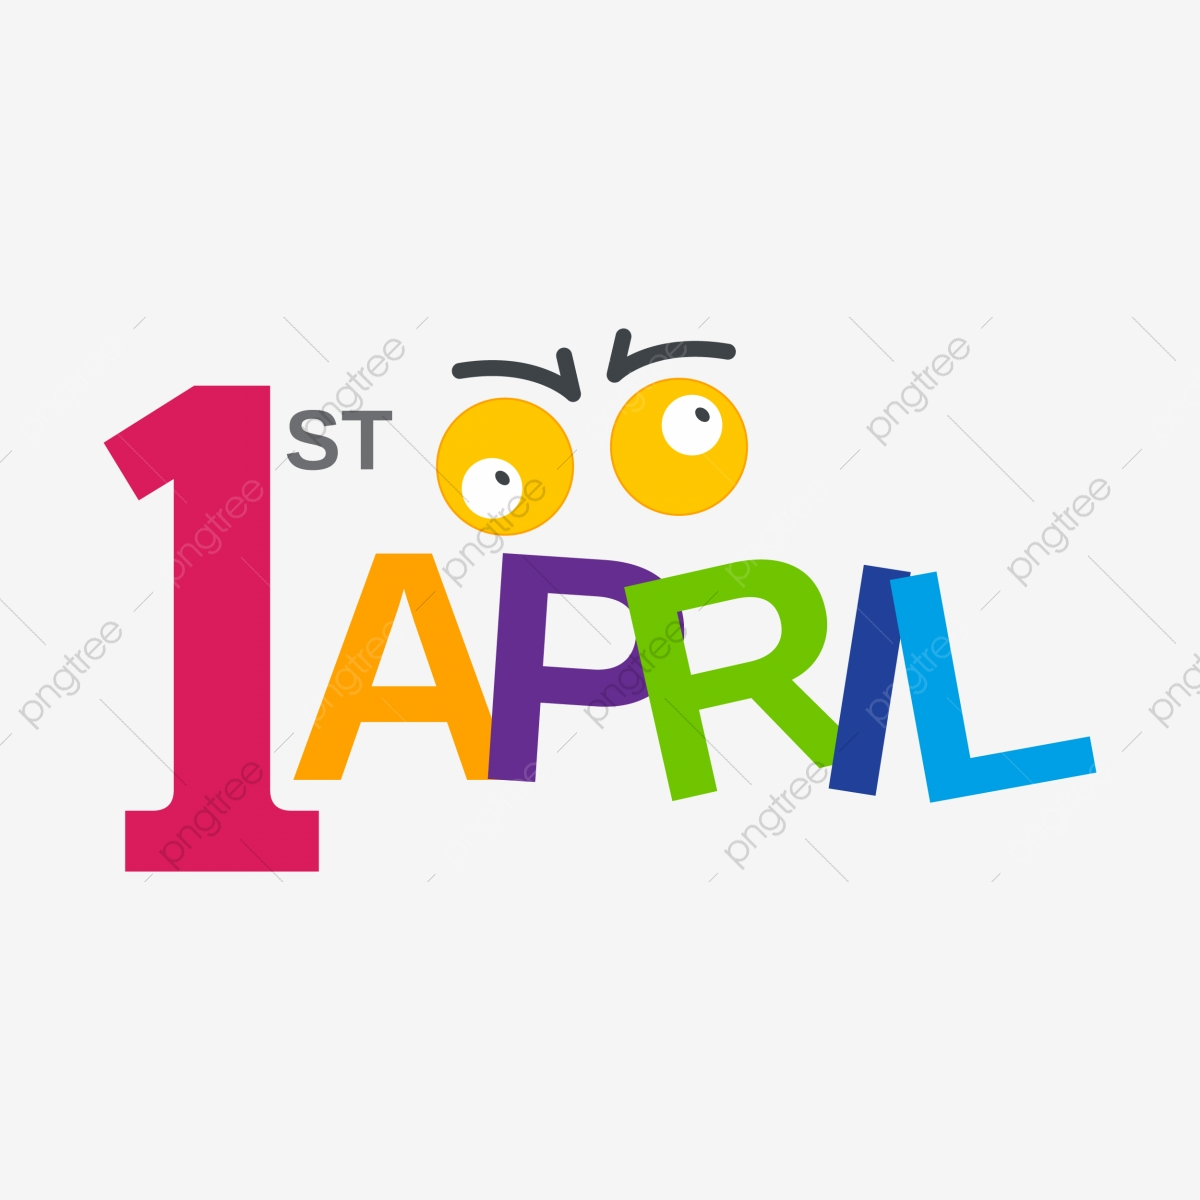 April transparent background. Fool day colorful funny